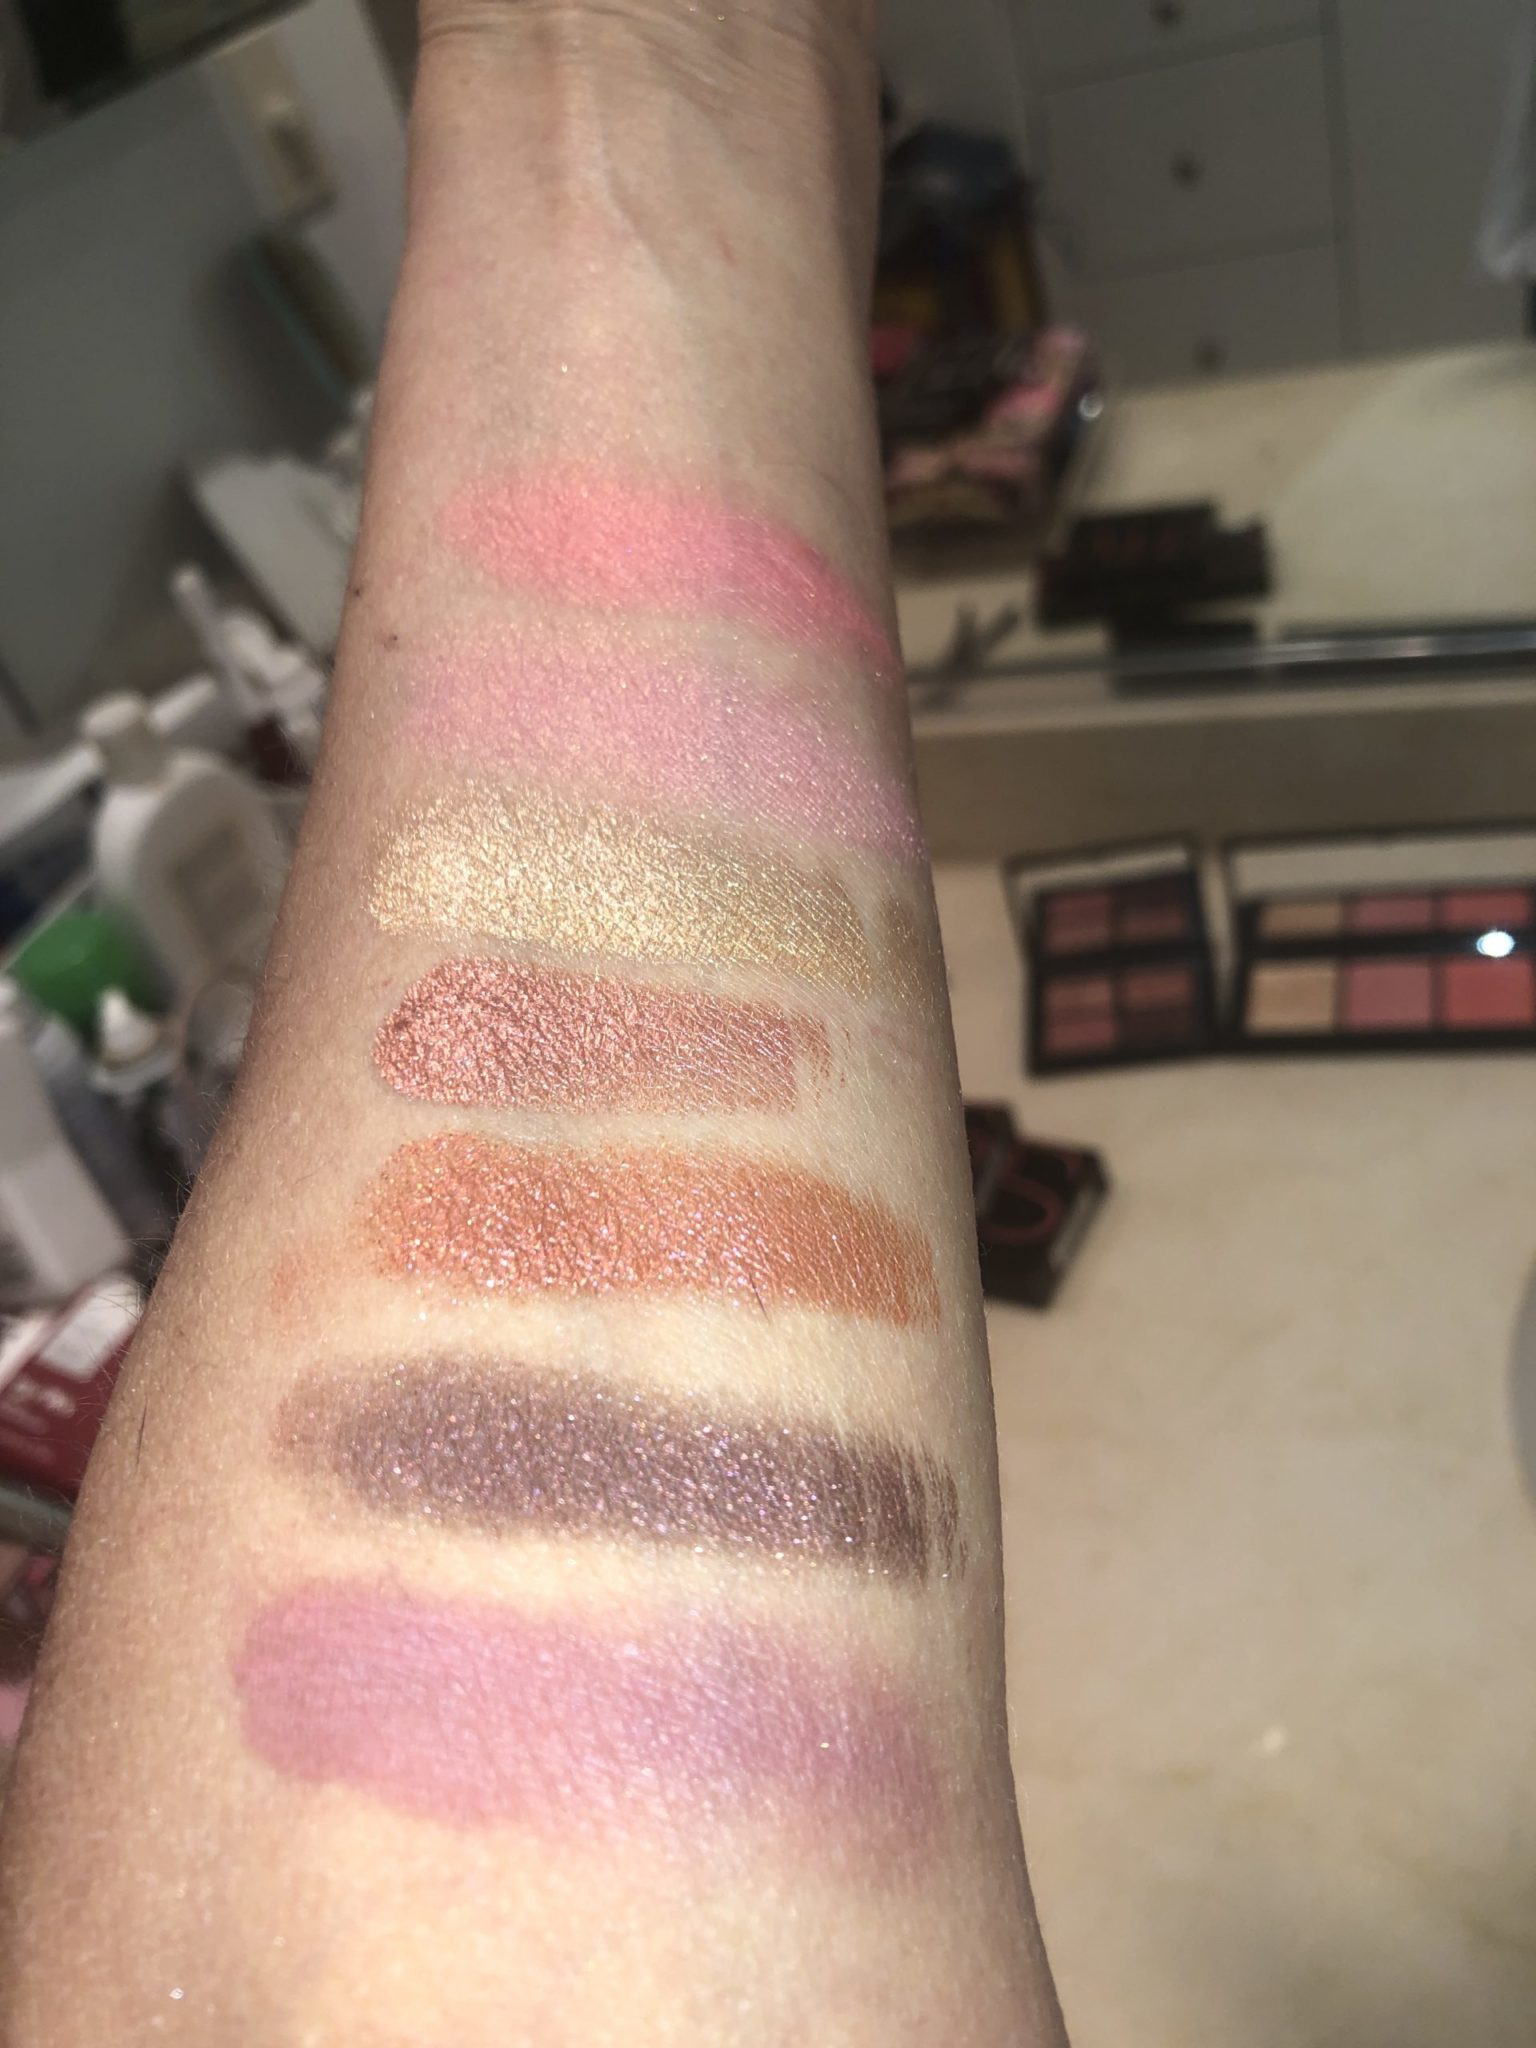 SWATCHES TOP TO BOTTOM: CHEEKS ORGASM X, ORGASM, ORGASM HIGHLIGHTER, PINK RUST SHIMMER EYESHADOW, SPARKLING AMBER EYESHADOW, BLACK WITH RED SHIMMER, DUSTY ROSE MATTE